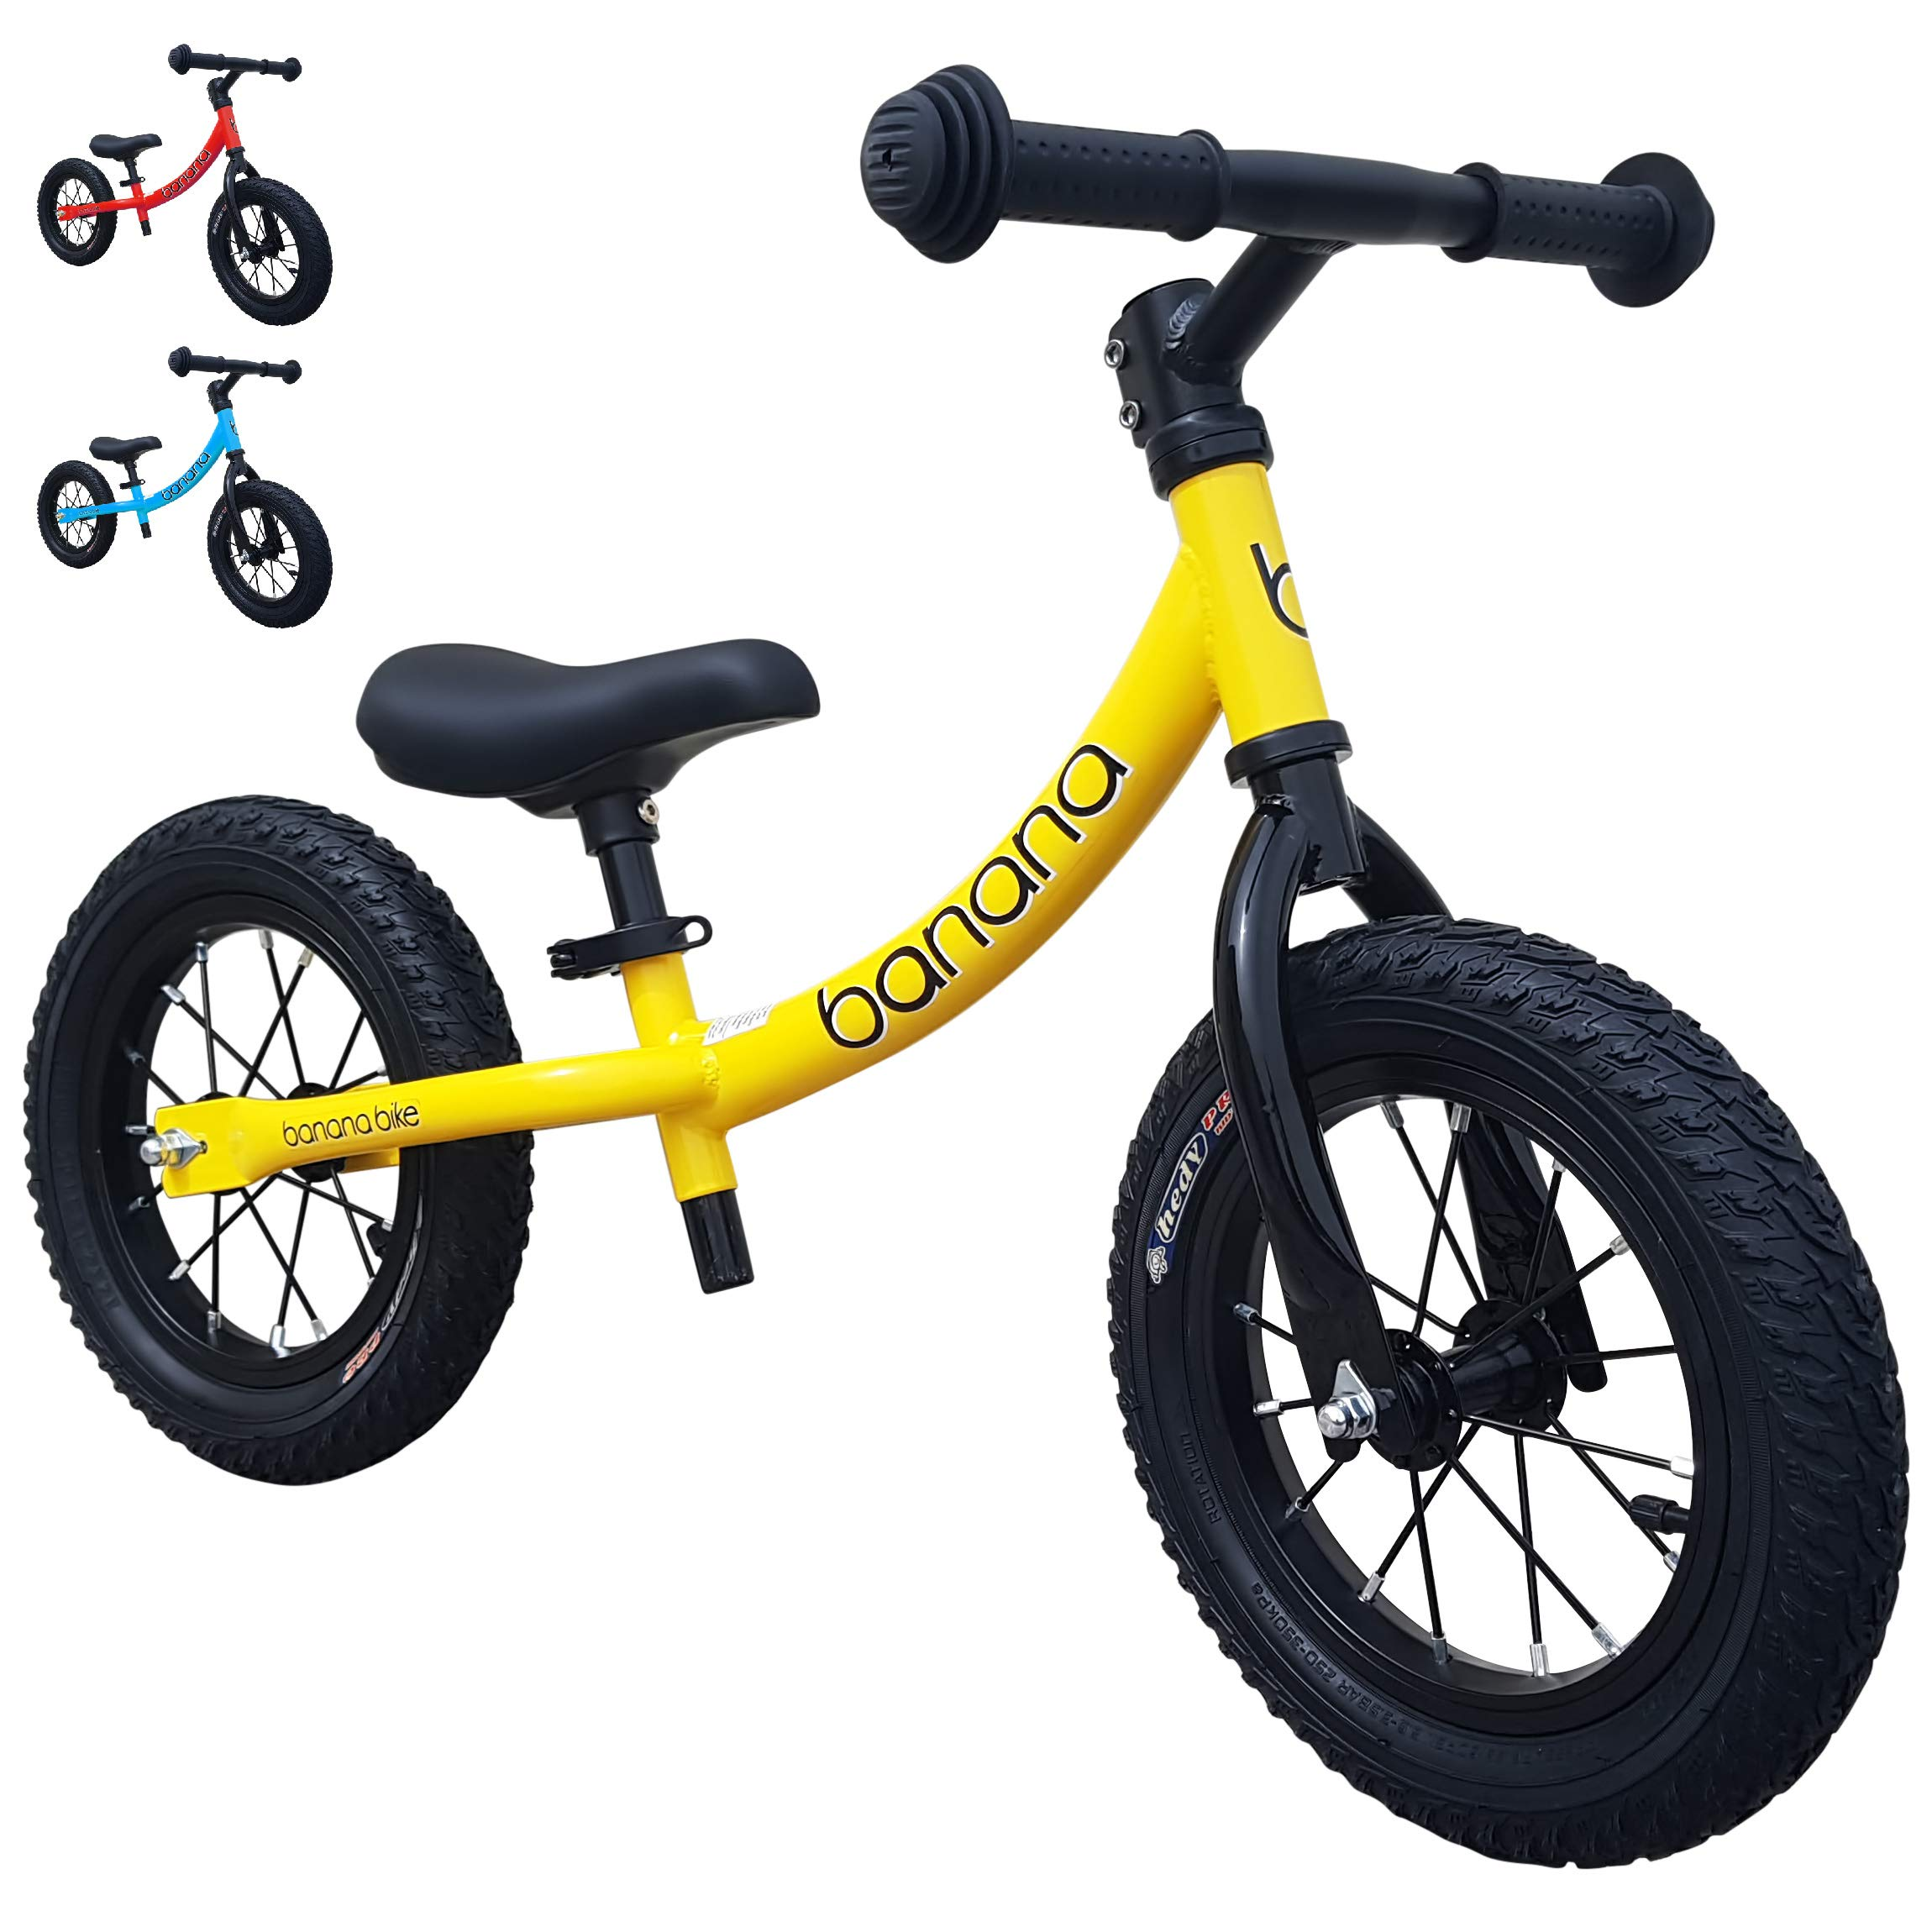 Banana Bike GT - Balance Bike with 12'' Alloy Wheels for Kids 2, 3, 4, 5 Year Olds (Yellow New)